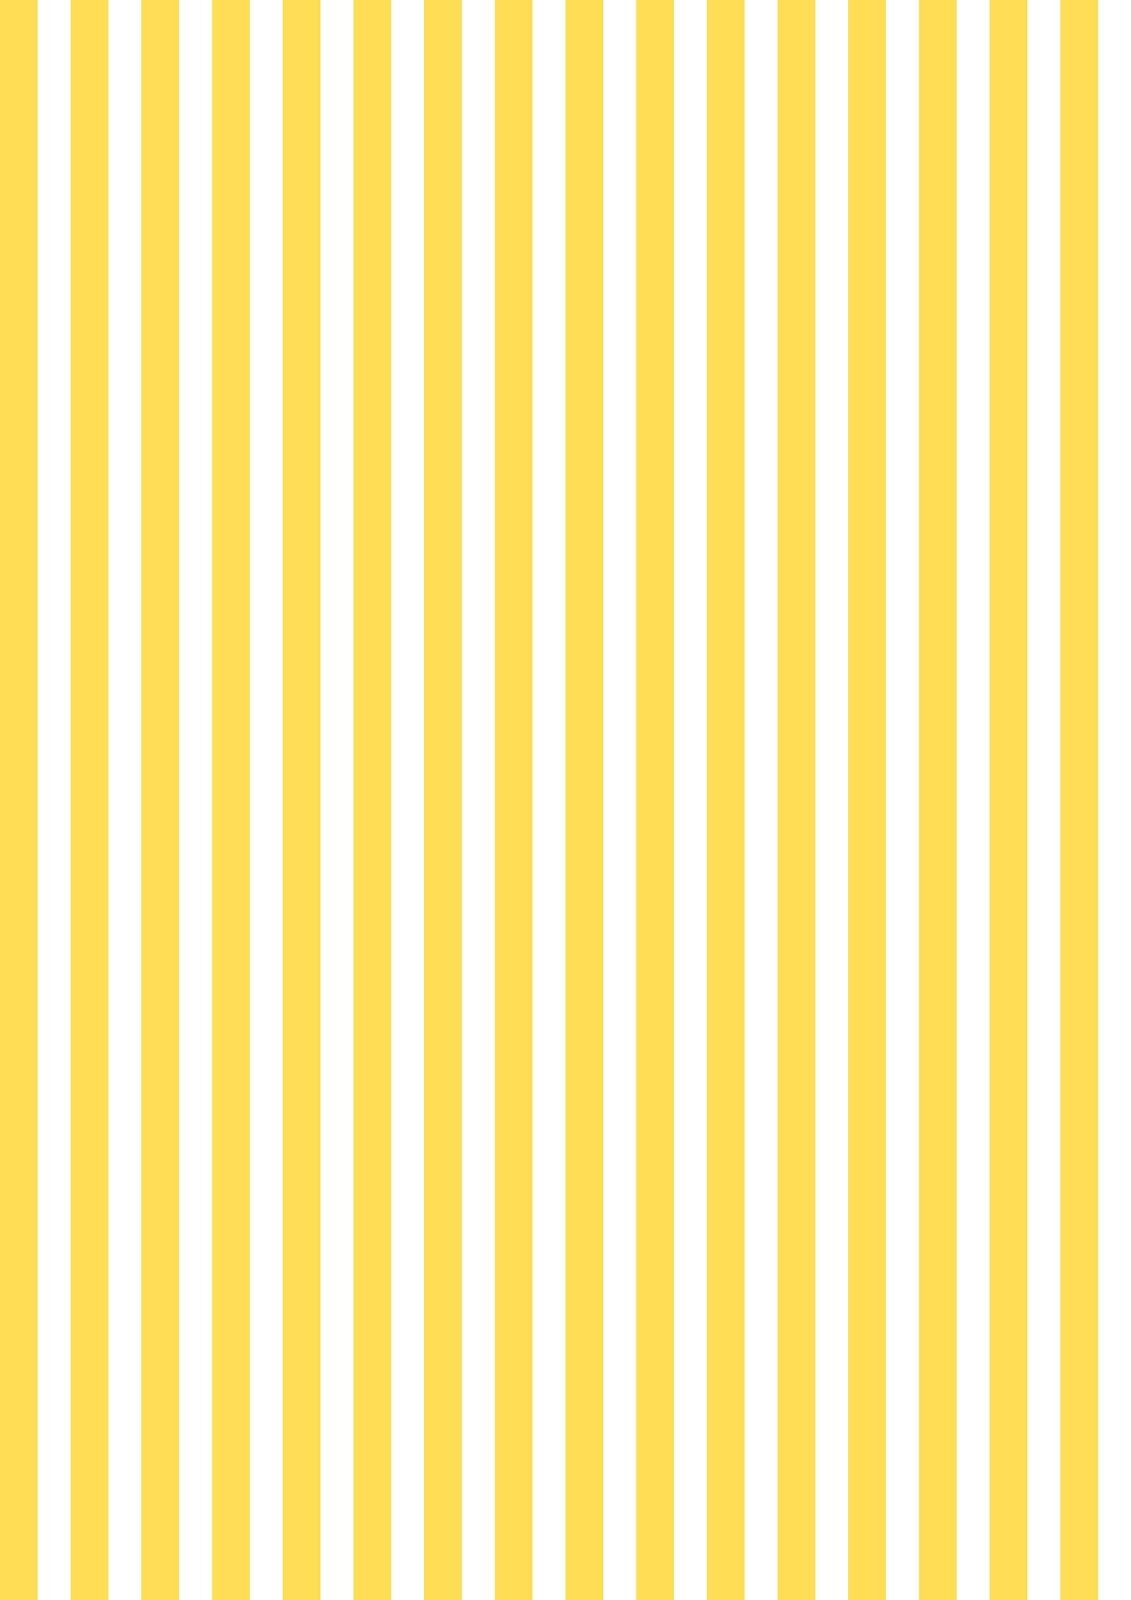 free digital striped scrapbooking paper - ausdruckbares